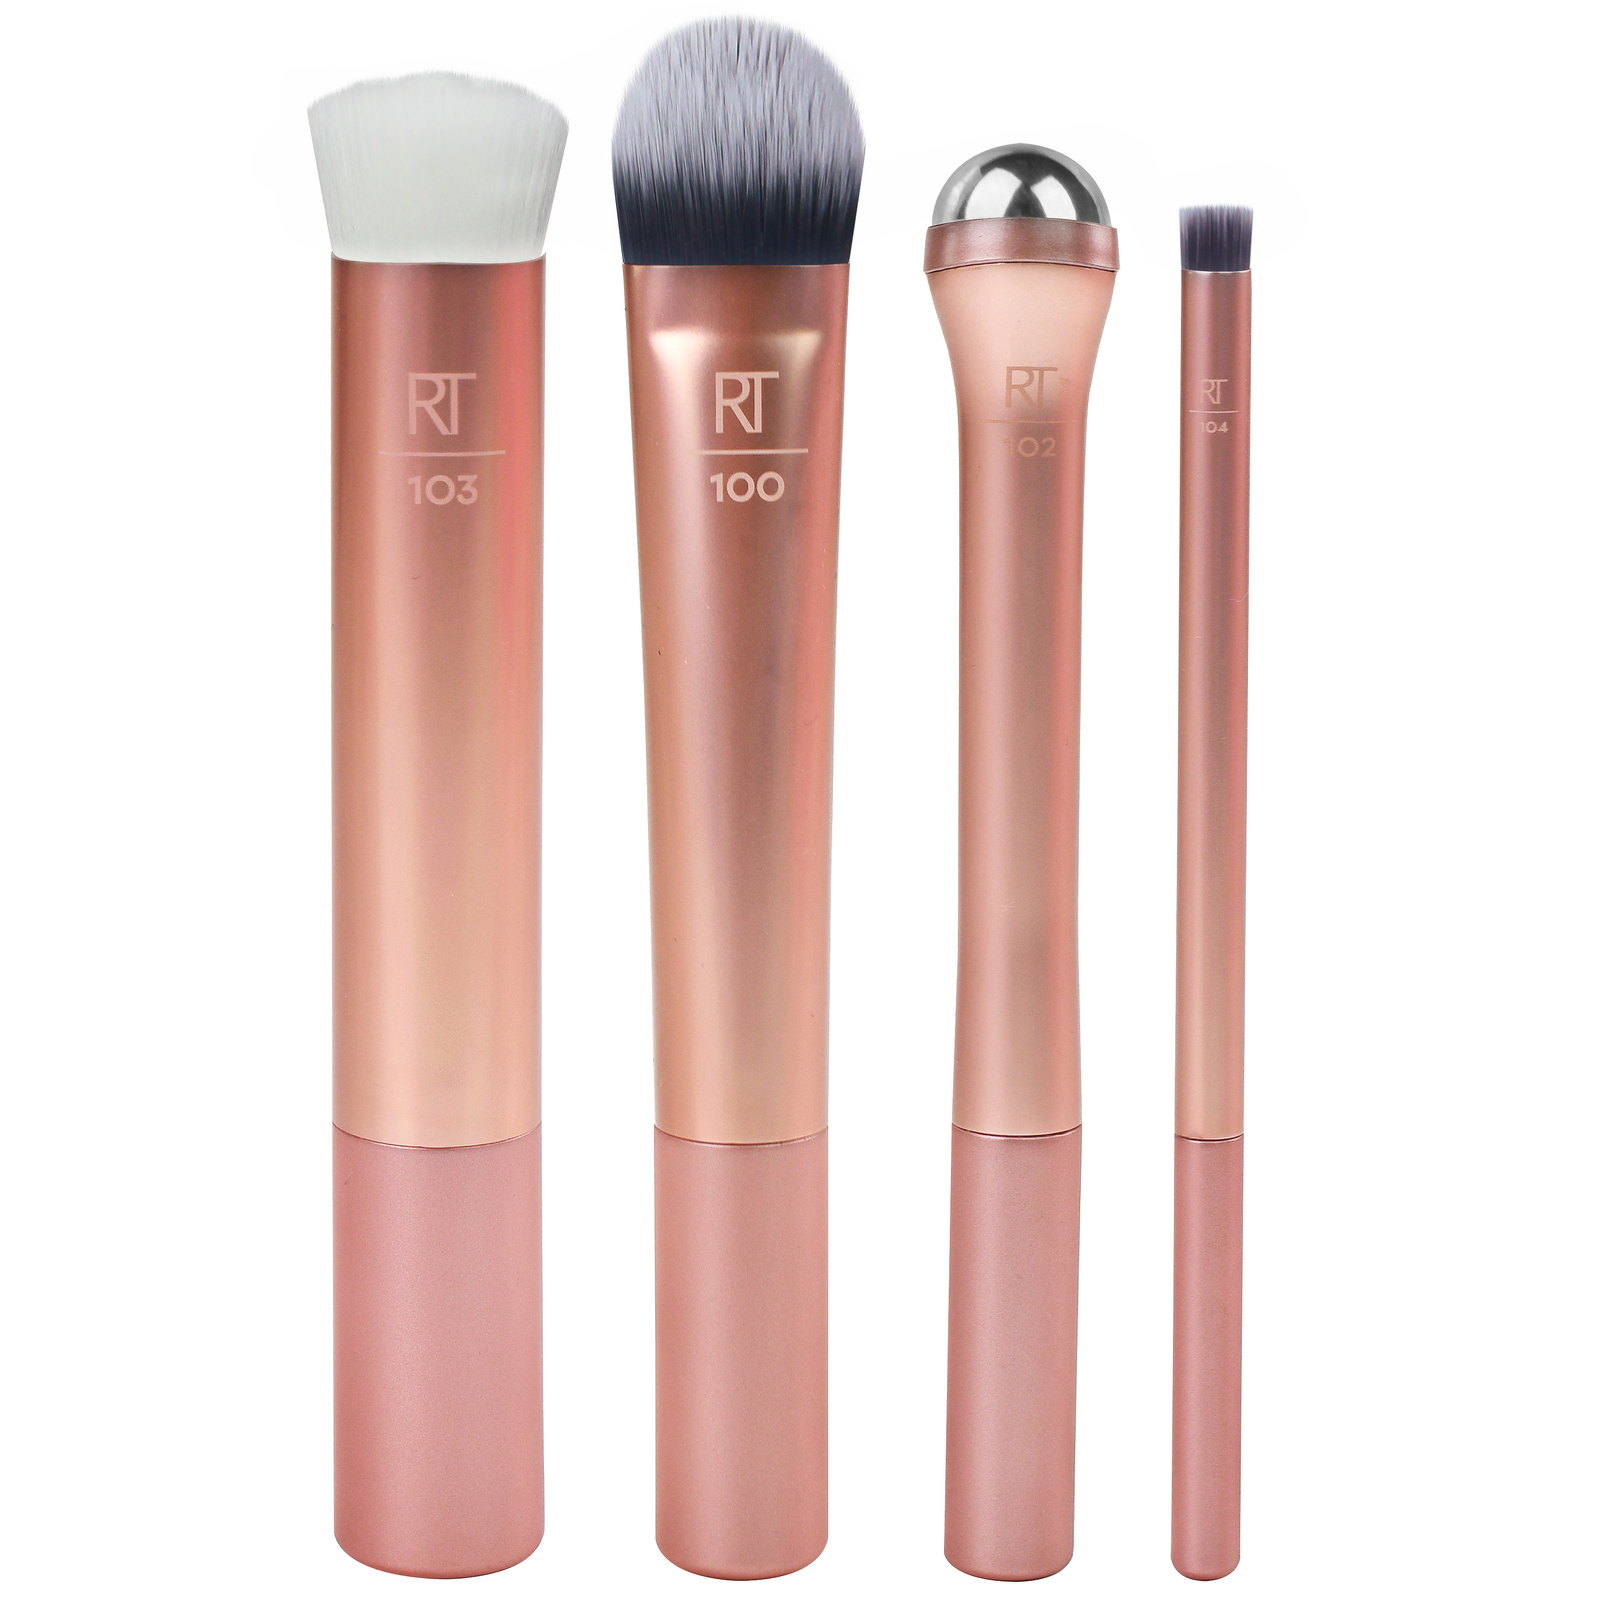 Real Techniques Gifts and Sets Prep + Prime Pre-makeup Brushes